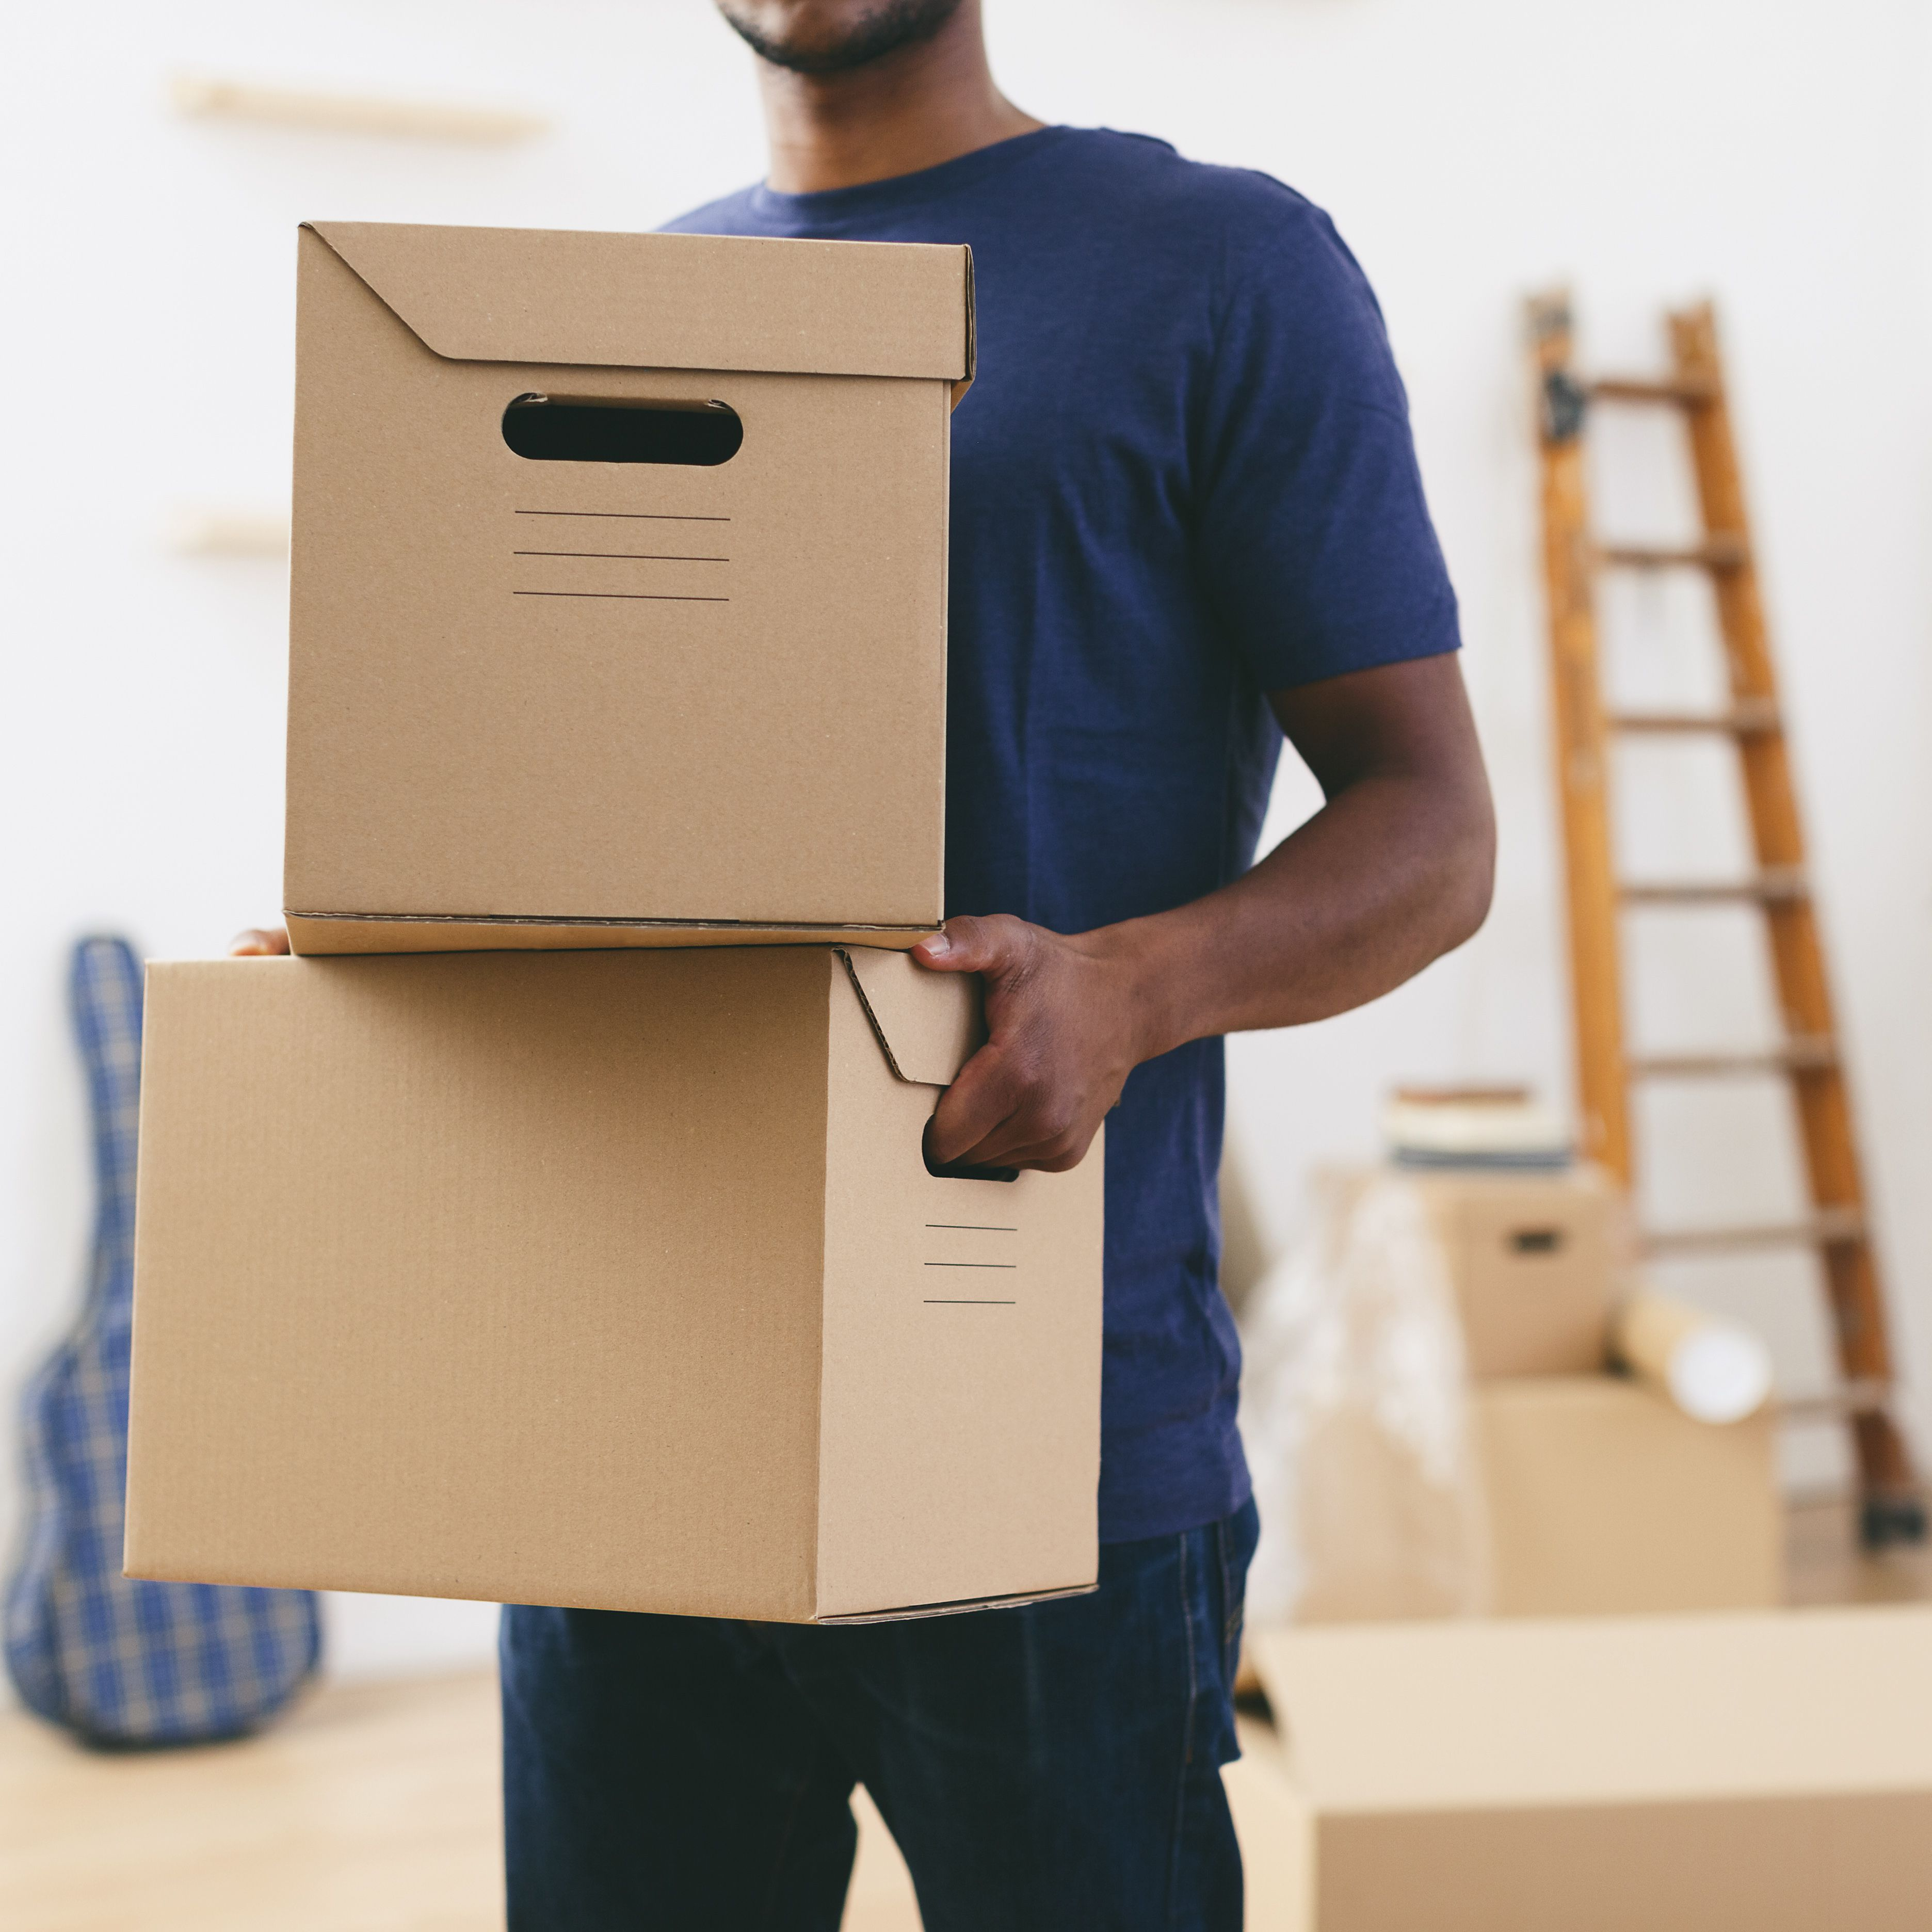 Can Movers Ask for a Deposit, and How Much?